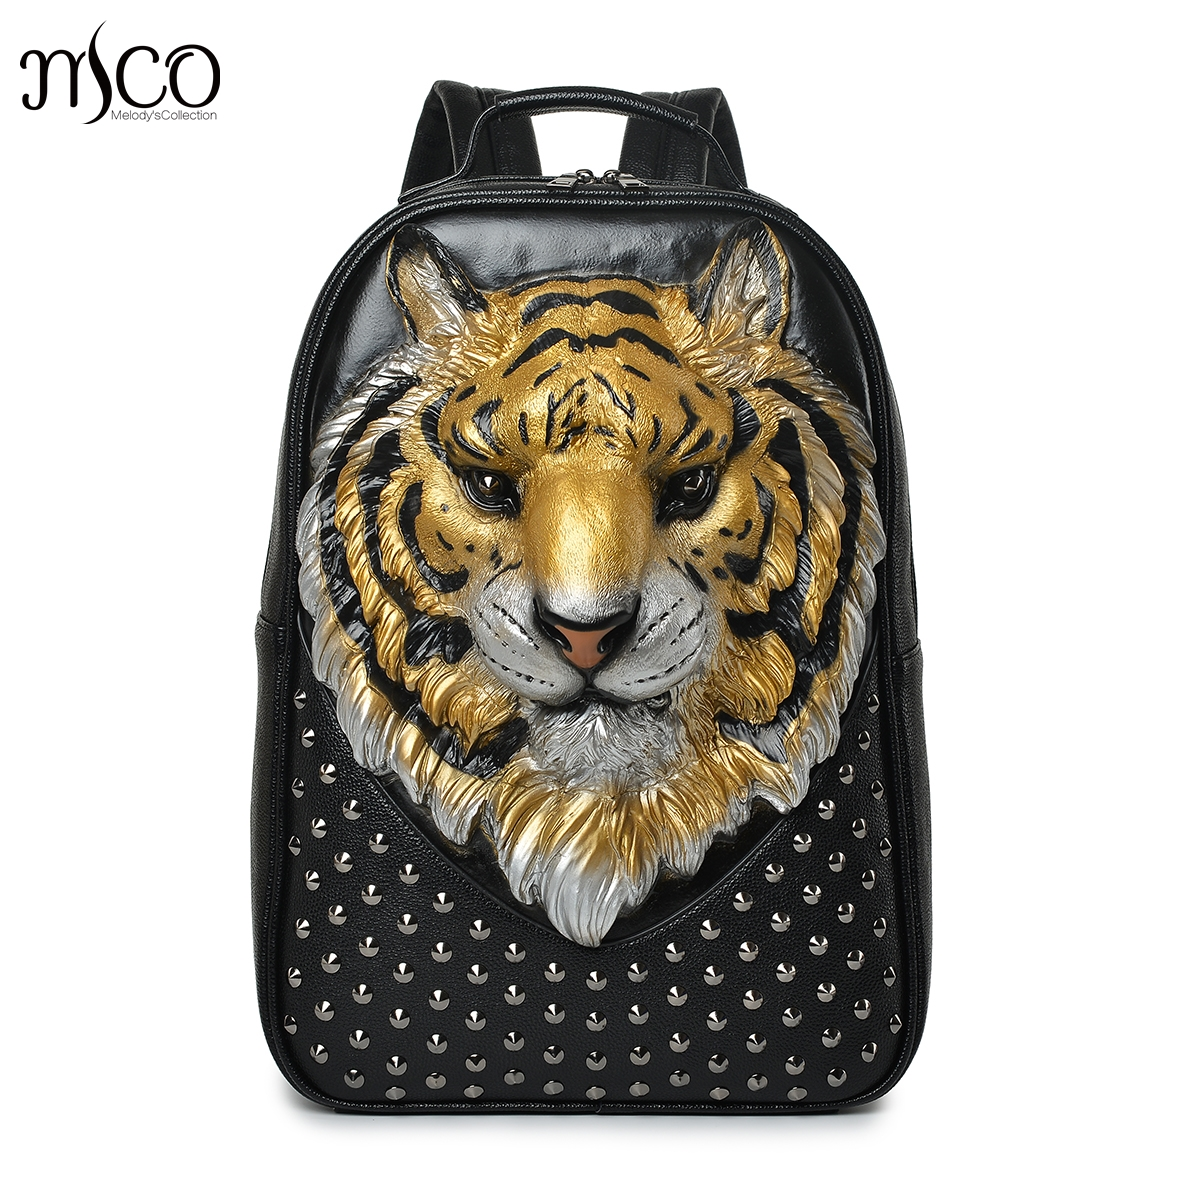 3D Emboss Tiger Head Studded Rivet Gother Men Backpack Women Leather Soft Travel punk rock Backpack Laptop School Halloween Bag3D Emboss Tiger Head Studded Rivet Gother Men Backpack Women Leather Soft Travel punk rock Backpack Laptop School Halloween Bag